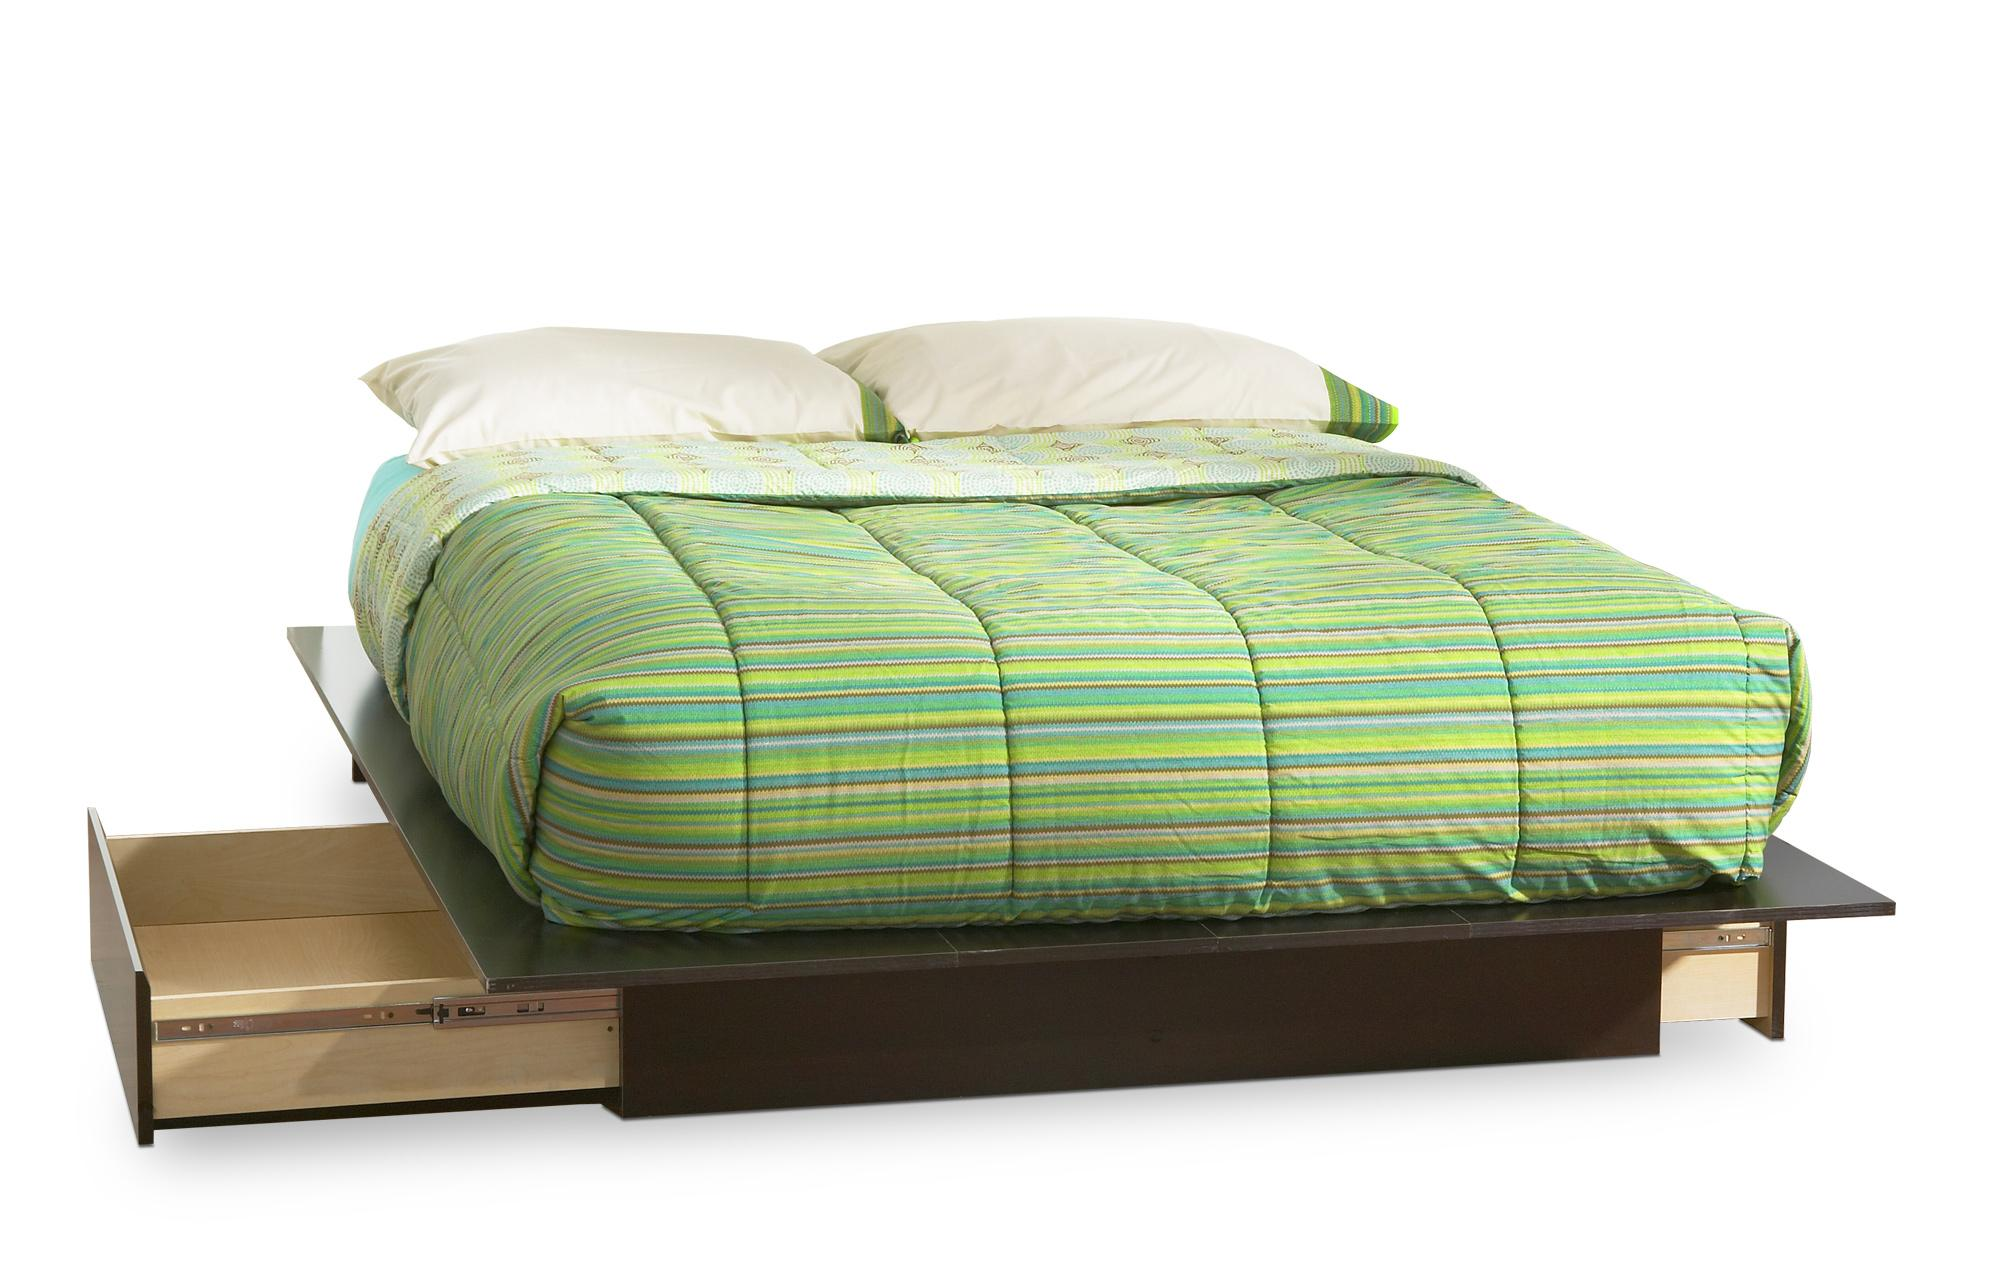 South Shore Queen Bed With Storage